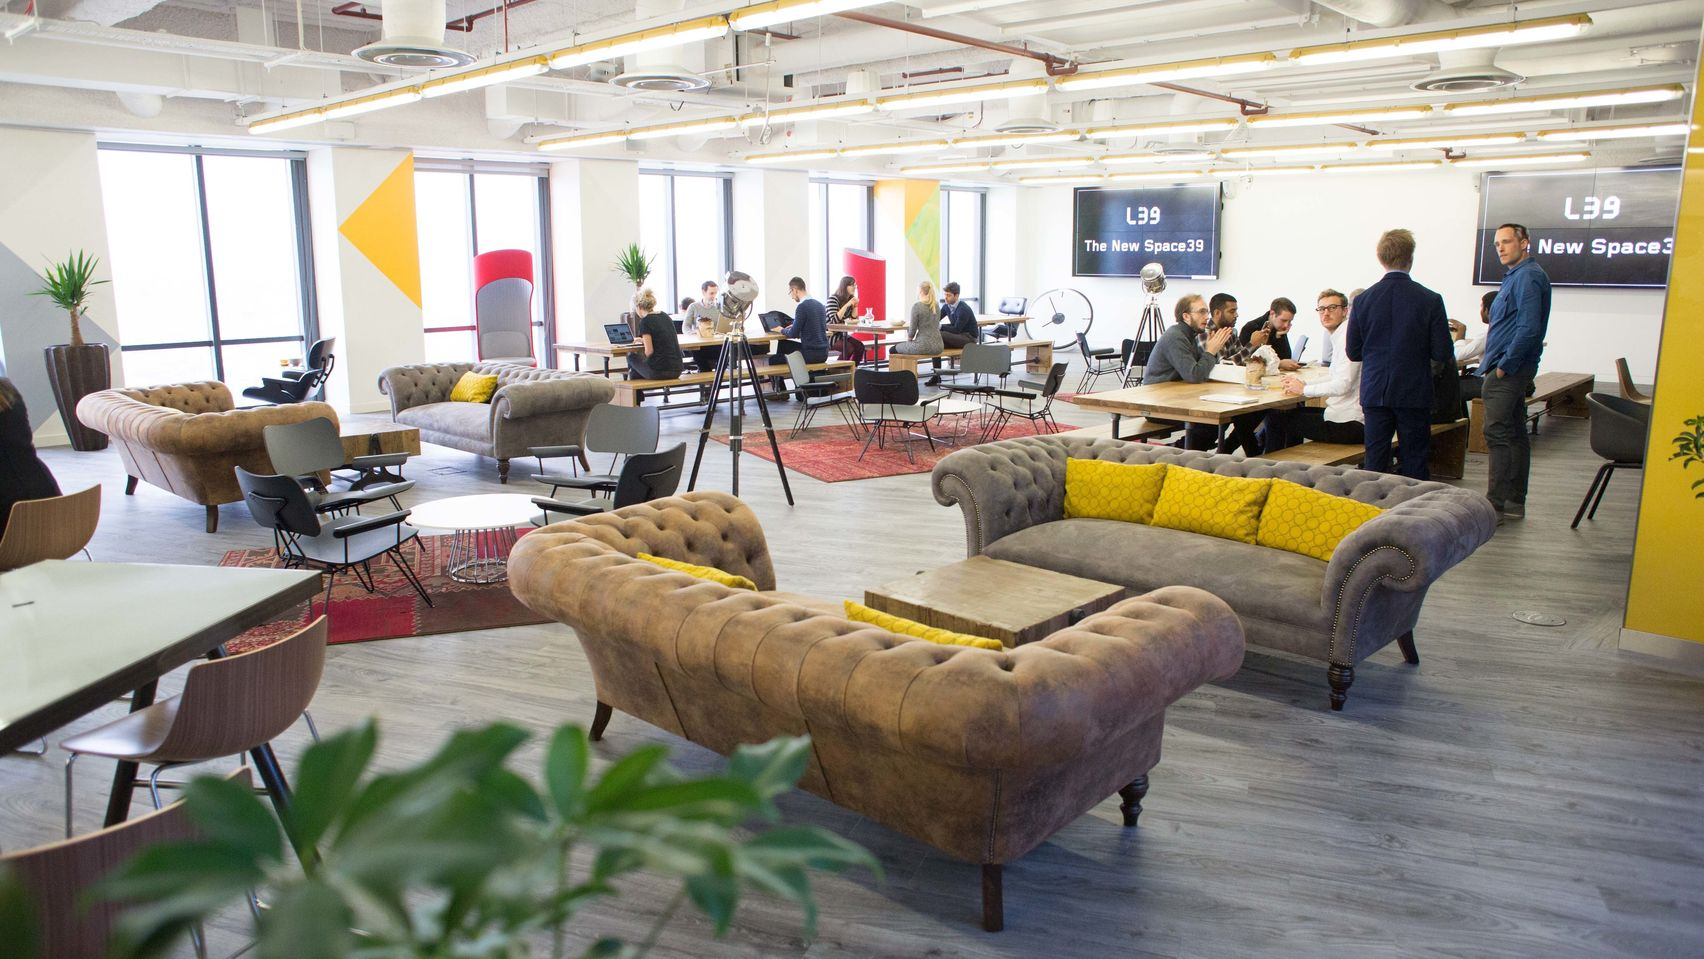 A large co-working space with sofas and chairs